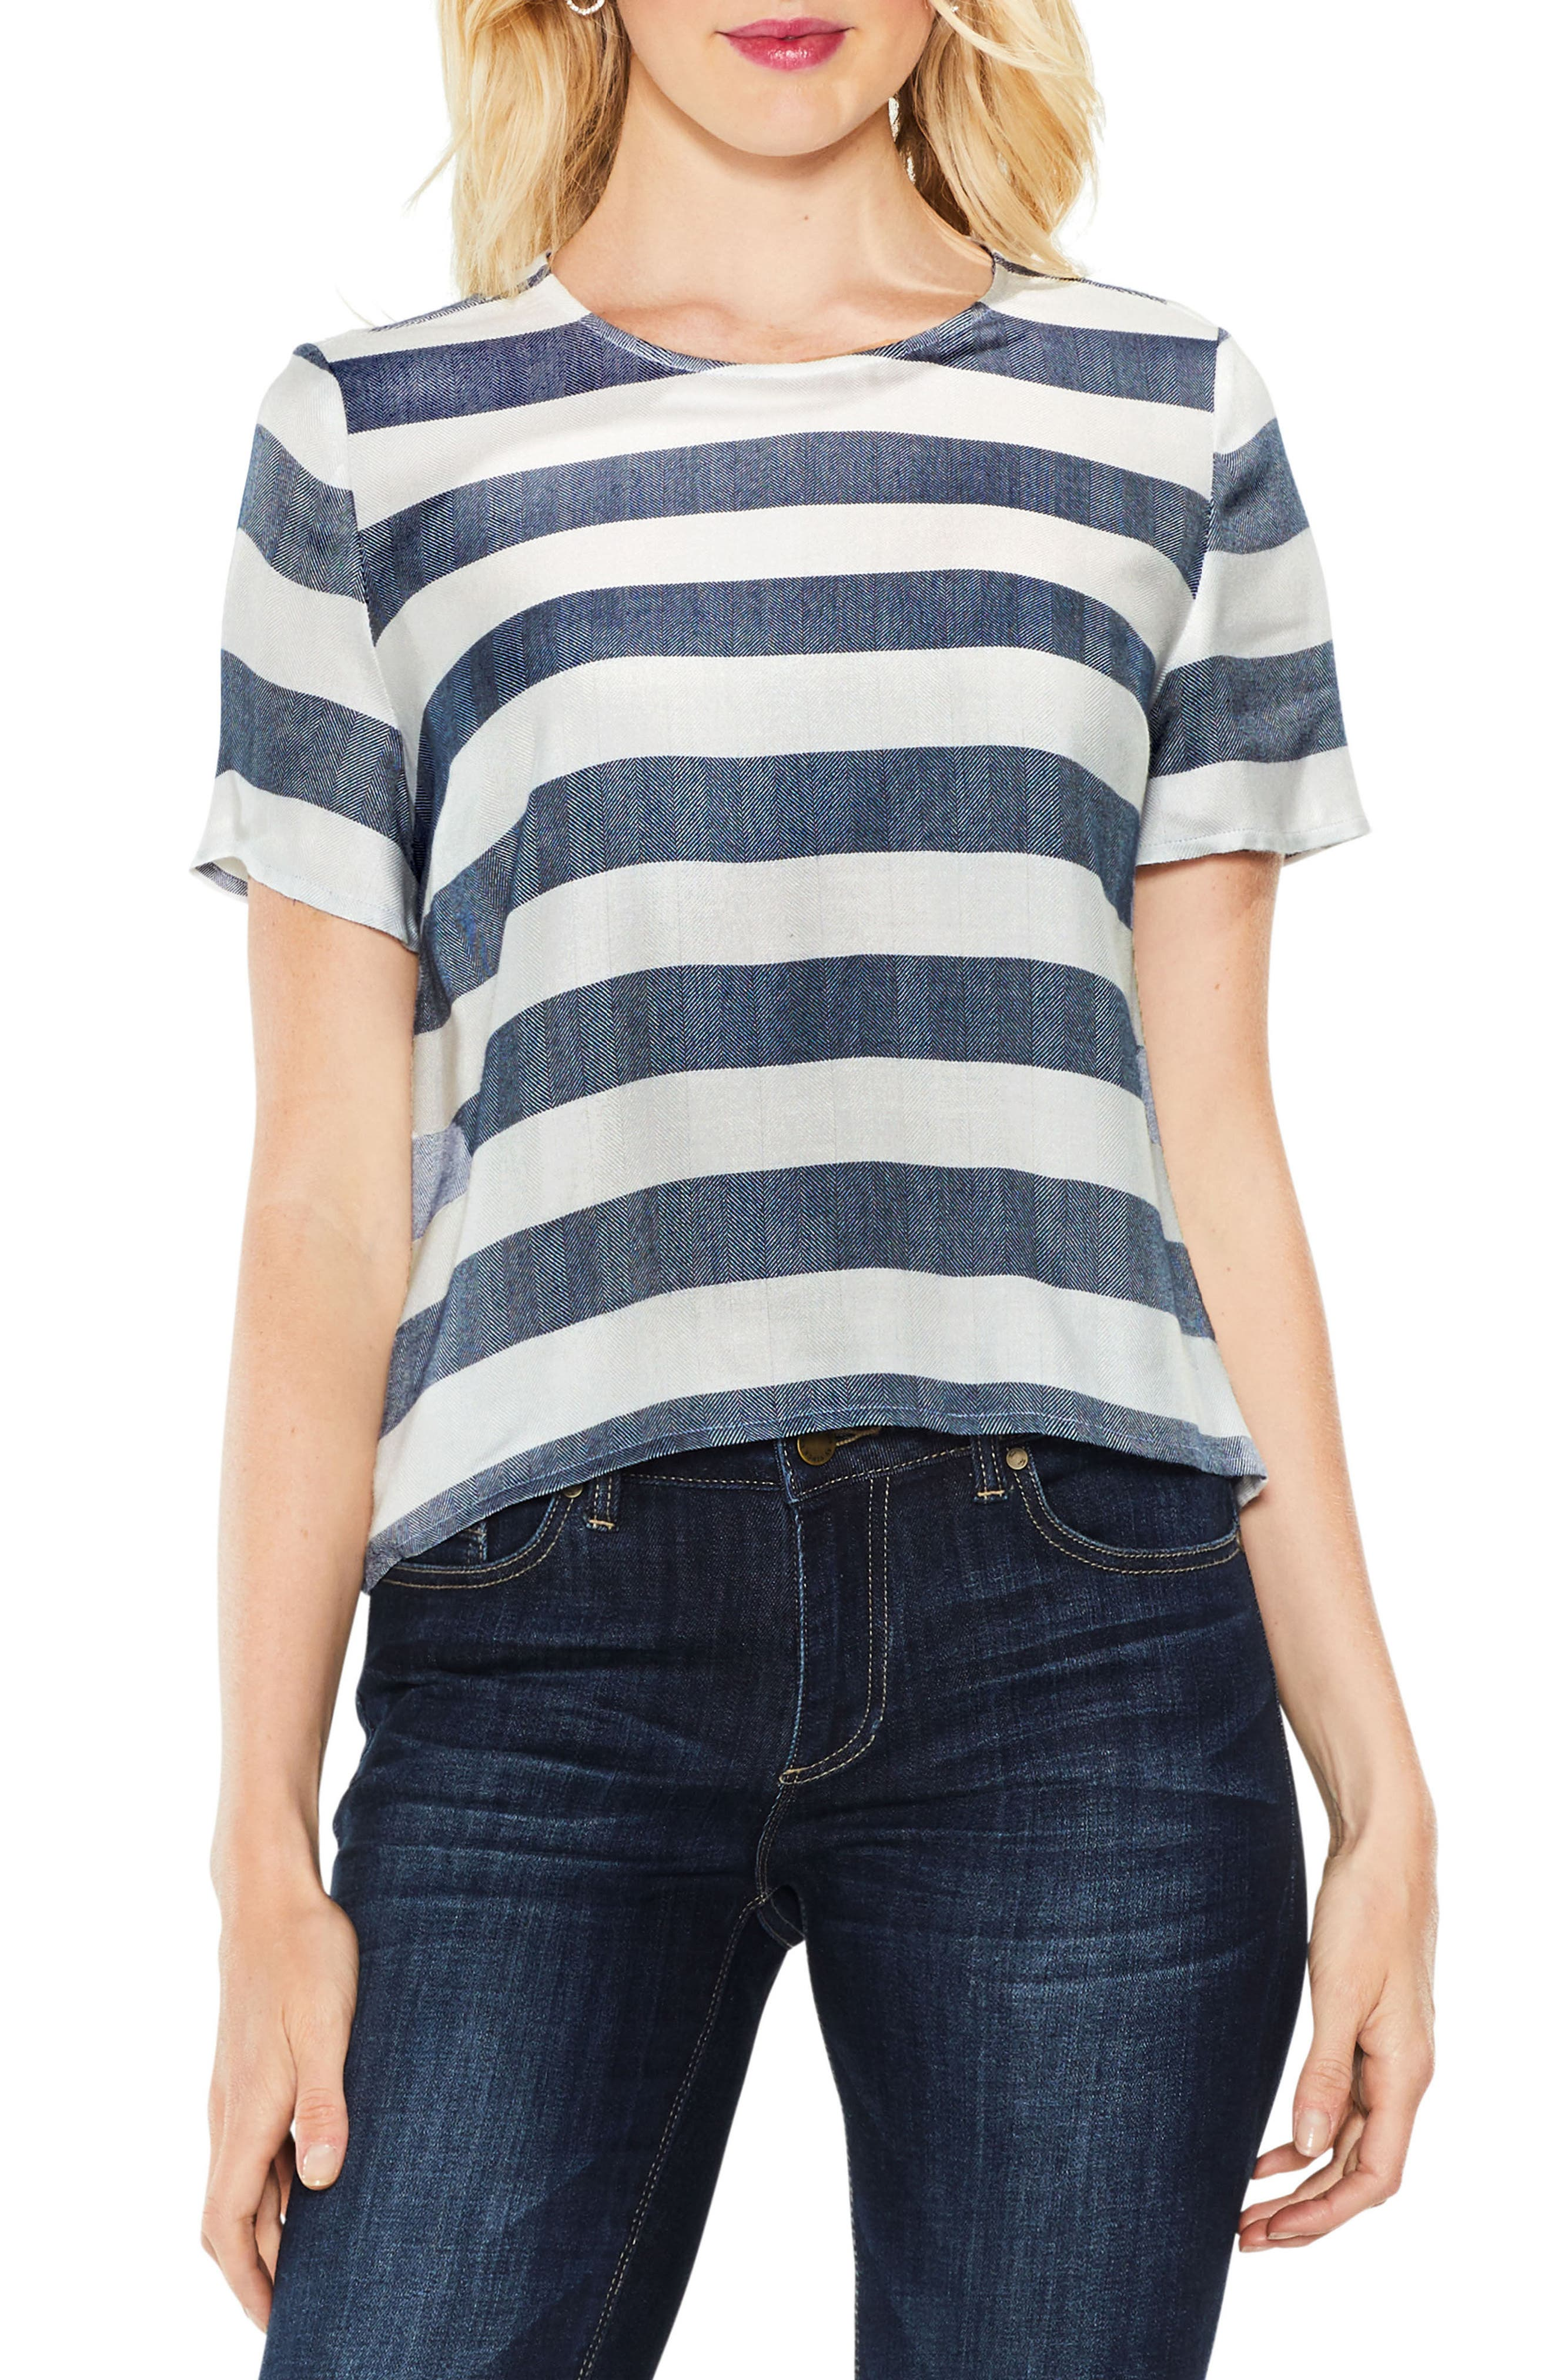 Alternate Image 1 Selected - Two by Vince Camuto Refined Herringbone Top